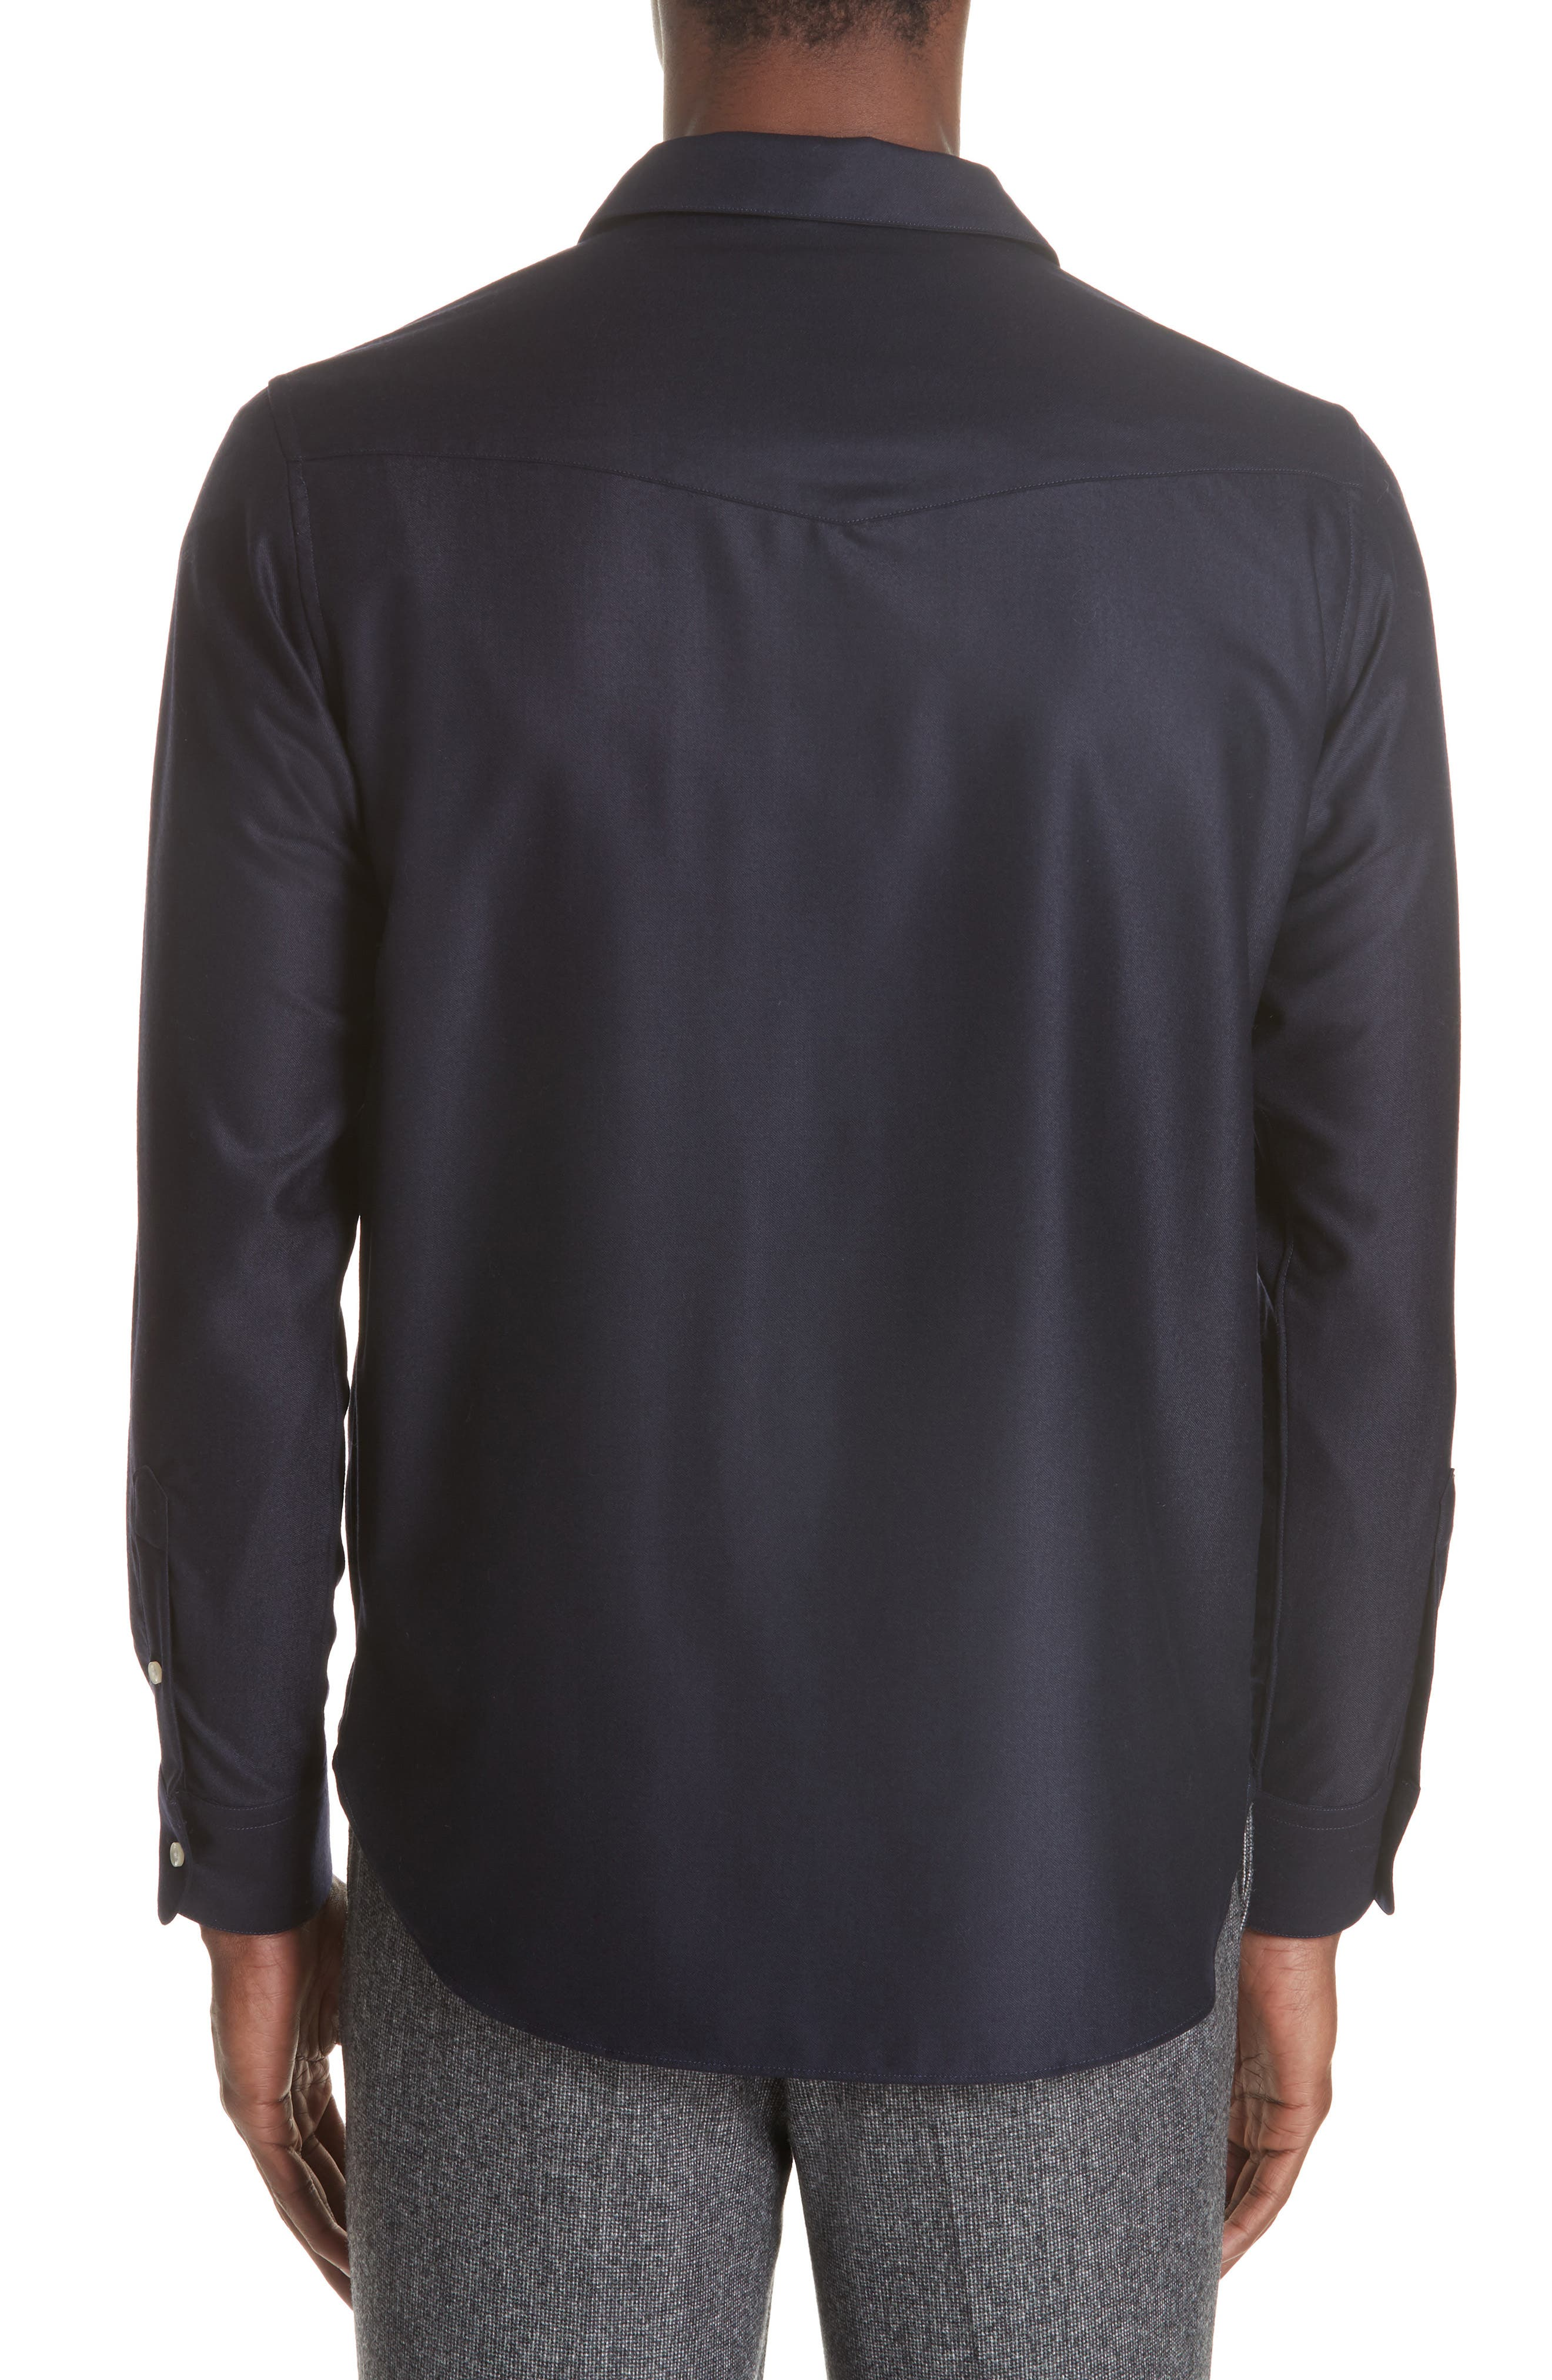 Officine Générale Woven Pullover Shirt,                             Alternate thumbnail 3, color,                             NAVY